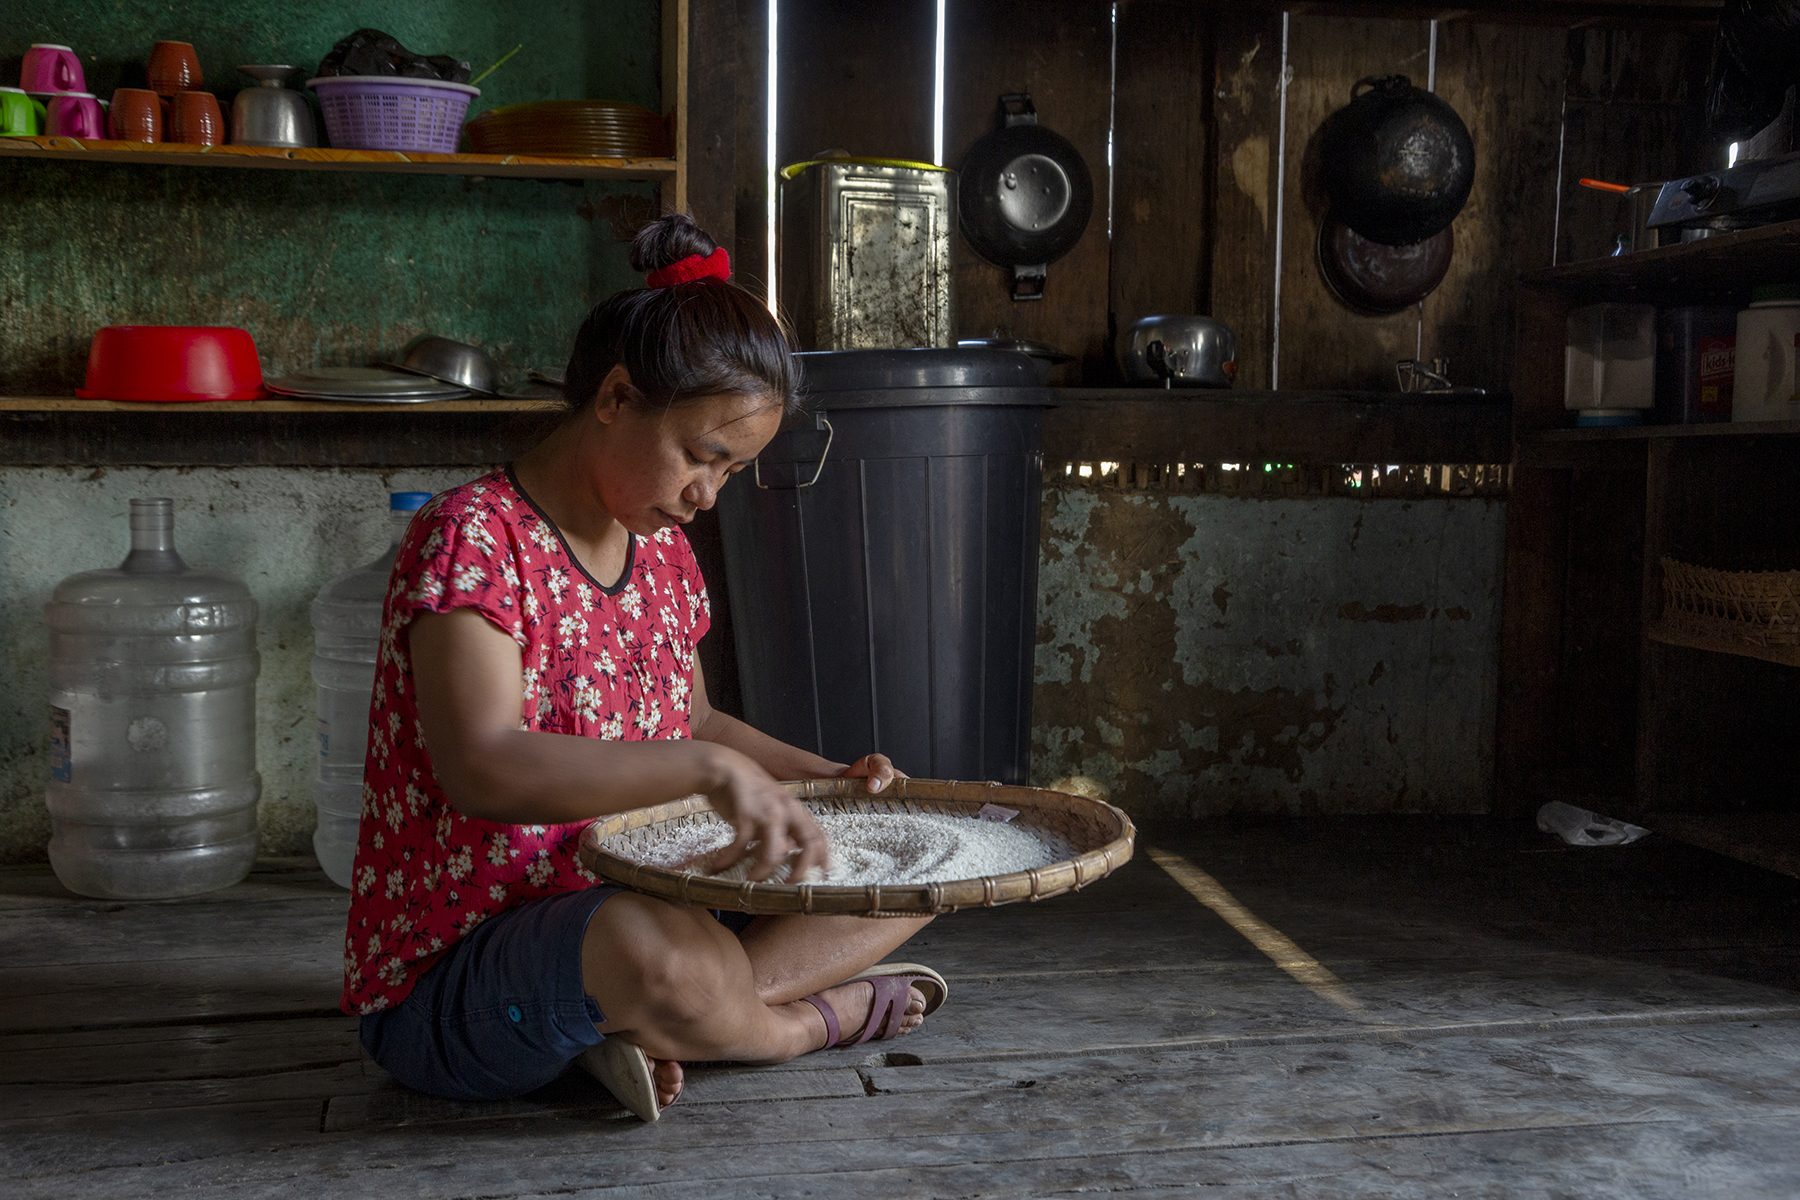 Ngaihnem, wearing a short-sleeved, U-neck top with small white flowers on a red background, sits cross-legged on the wooden kitchen floor. A large circular tray made of bamboo cane is placed on her lap.  It contains white raw rice which she is swirling with her hand. Behind her are porcelain cups and steel plates on two wooden shelves; a black plastic water drum; and pans and woks hanging from hooks on the wall.